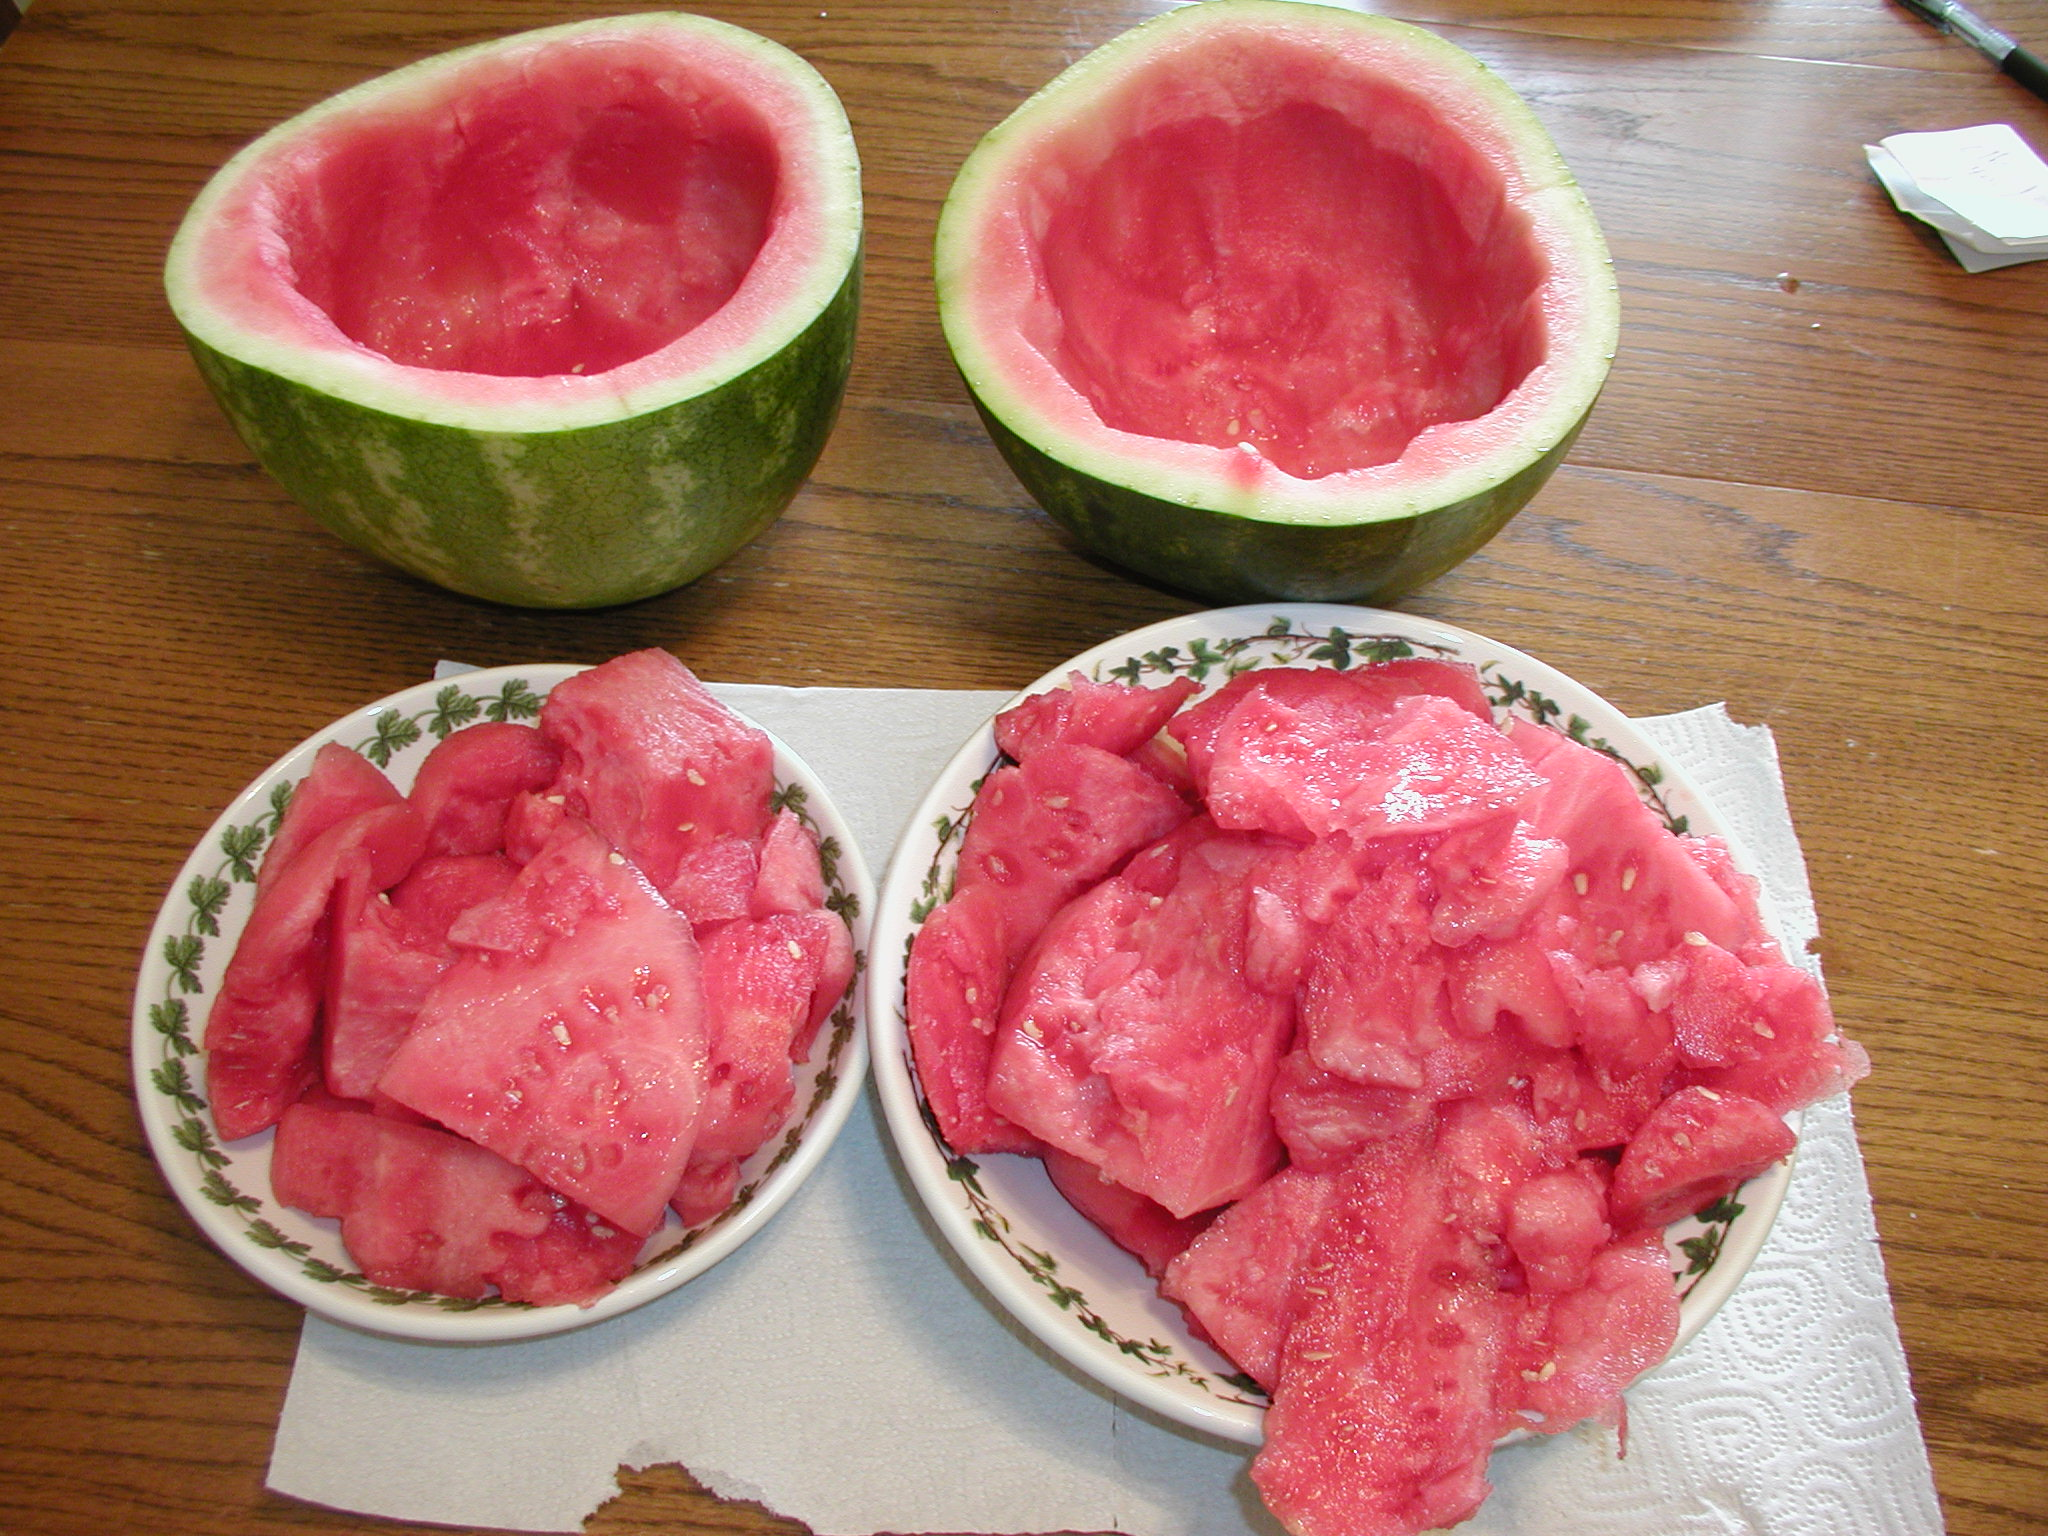 How to save a watermelon